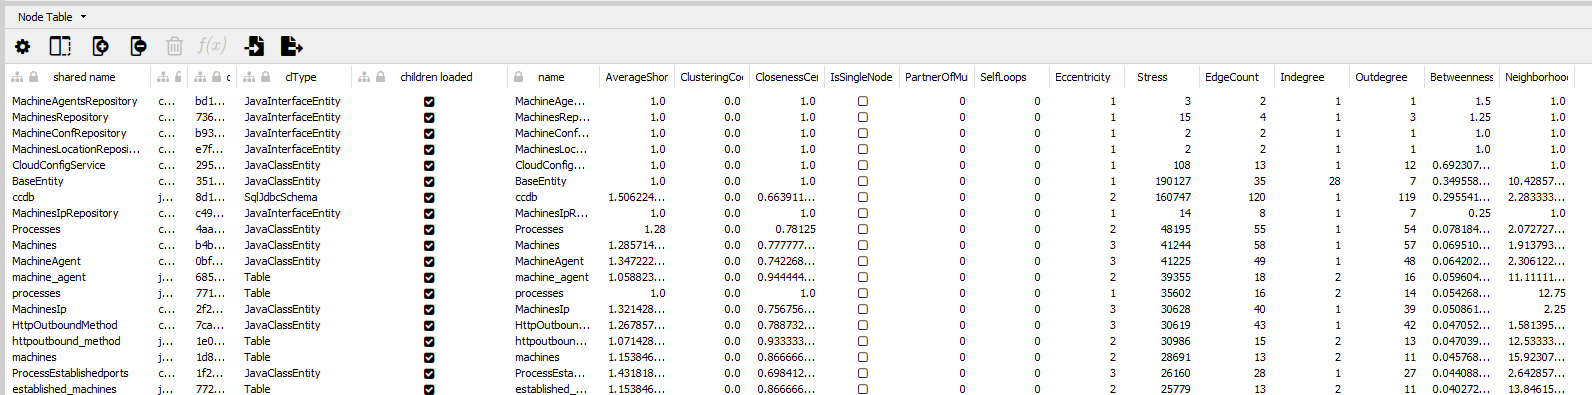 a table of data in the rich client view of the new CodeLogic UI